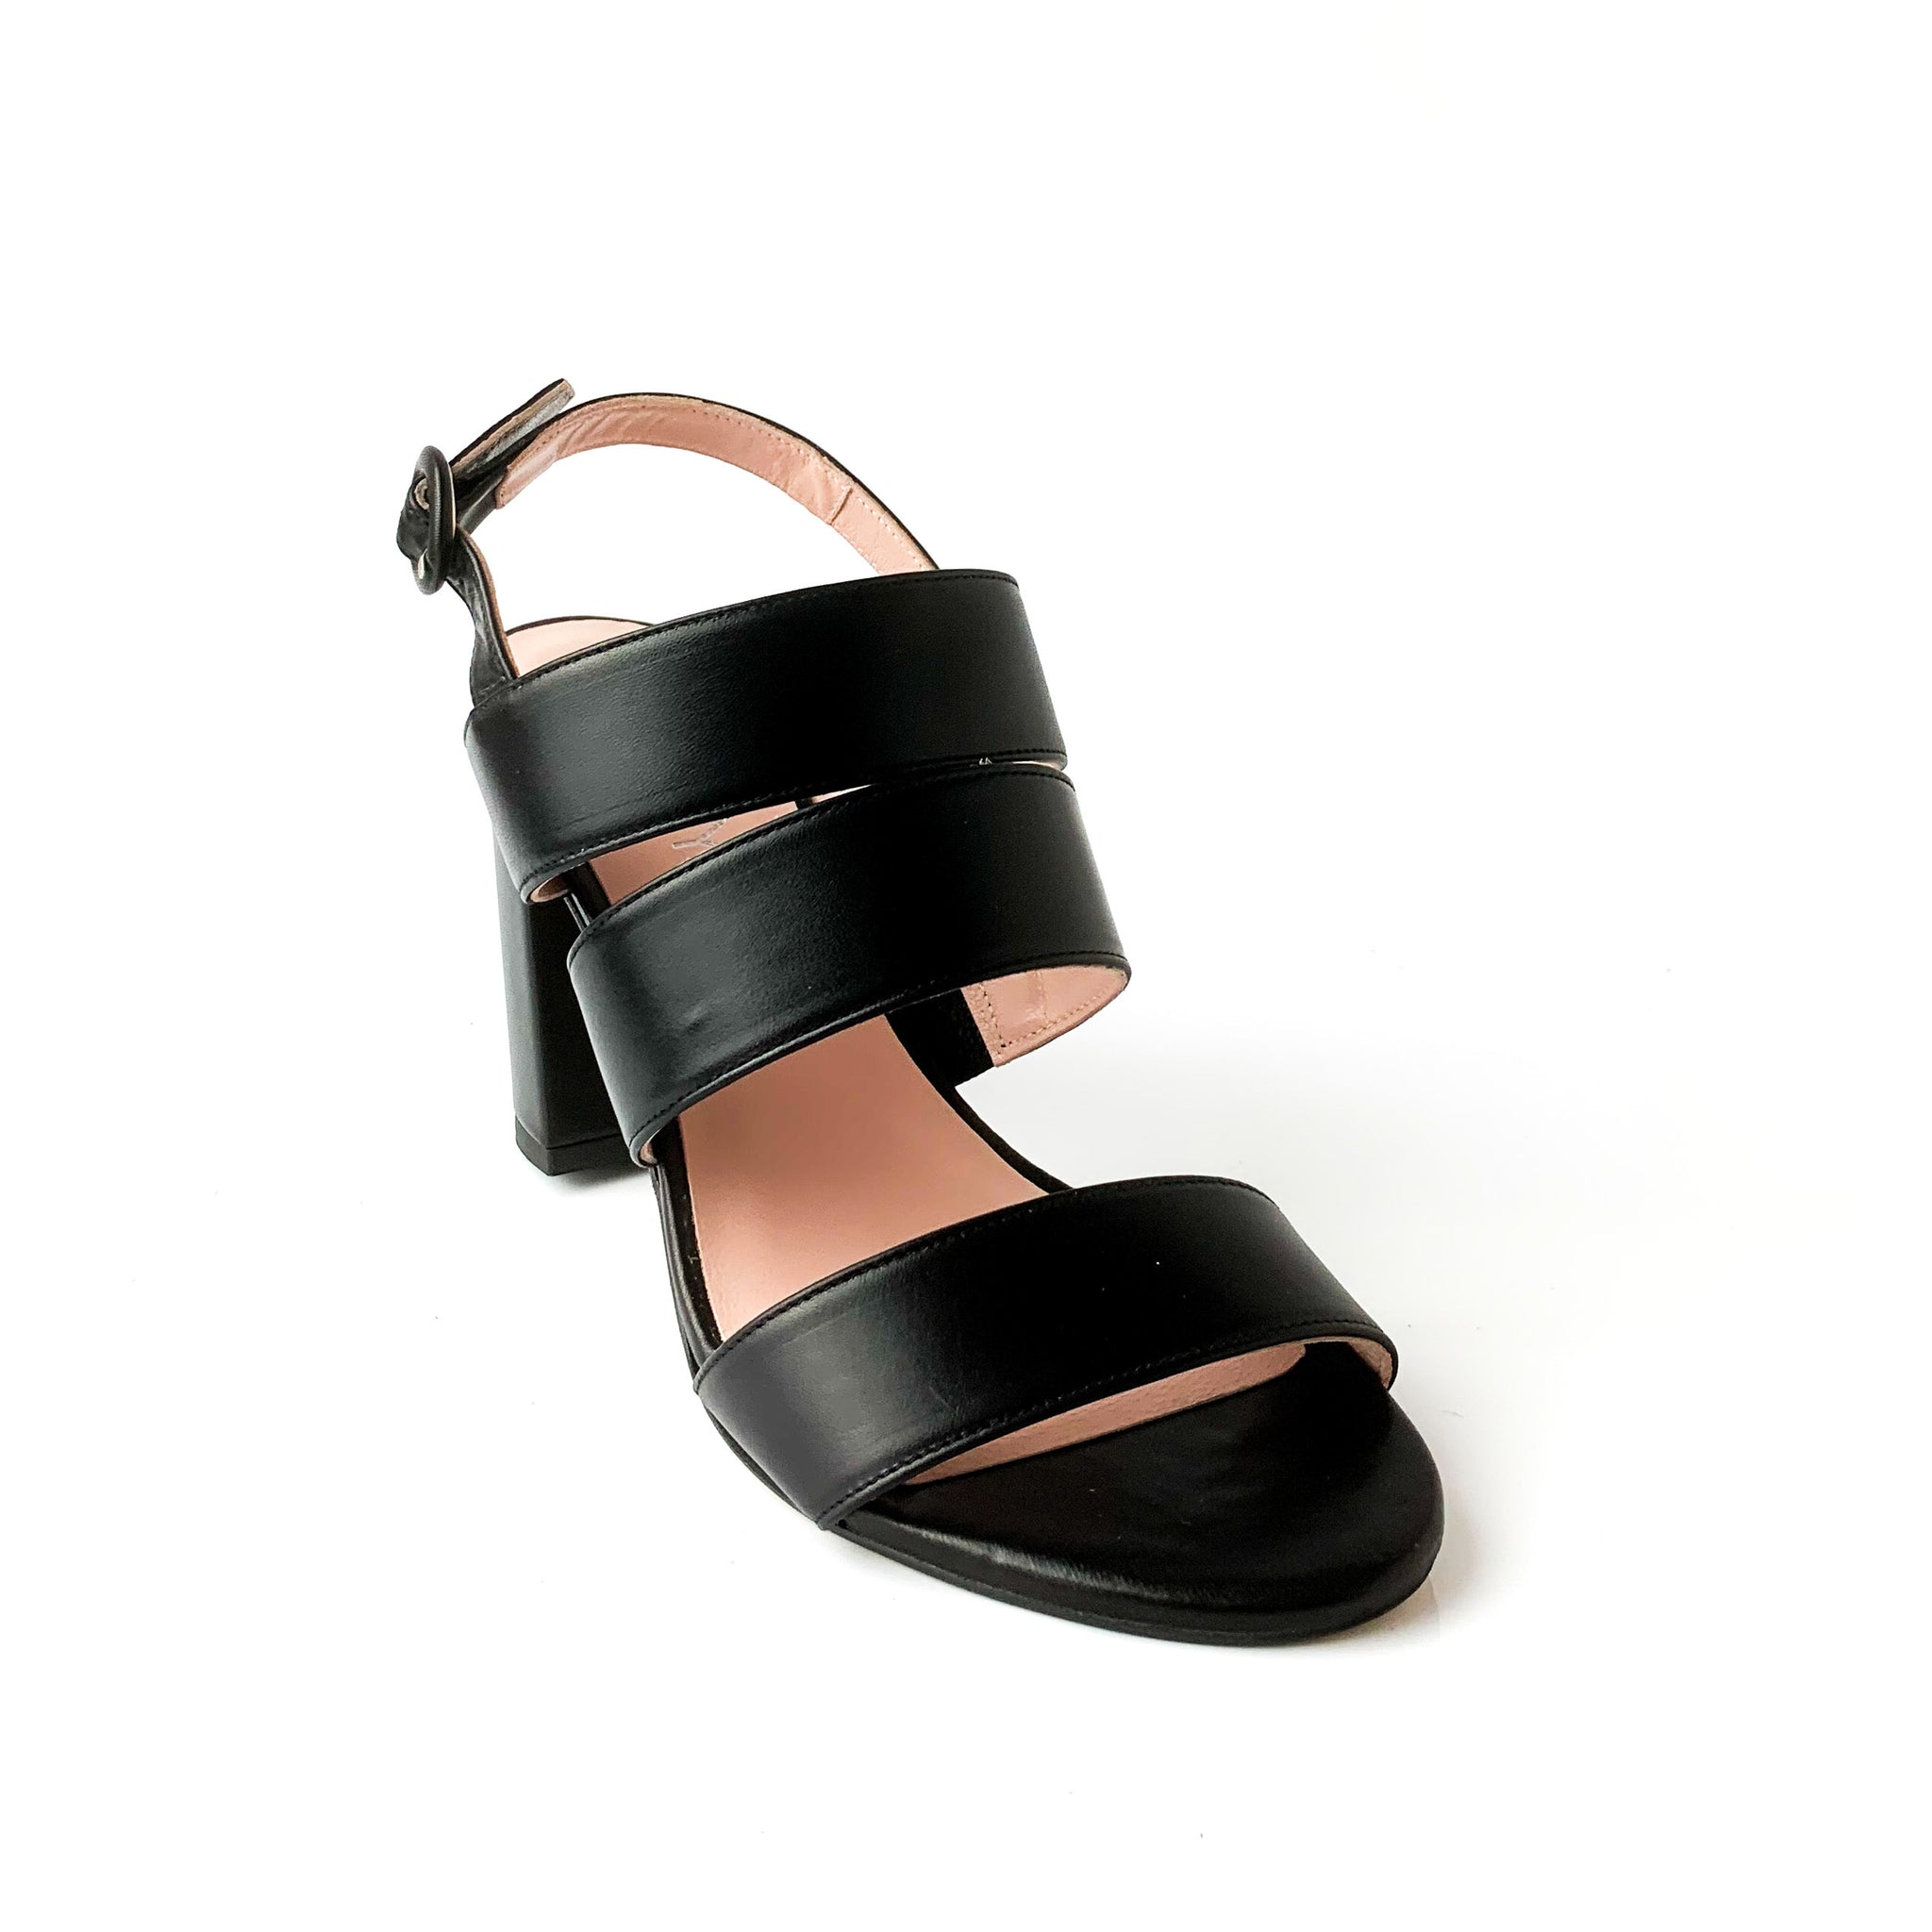 SAM | Black Heeled Sandals - TrystShoes